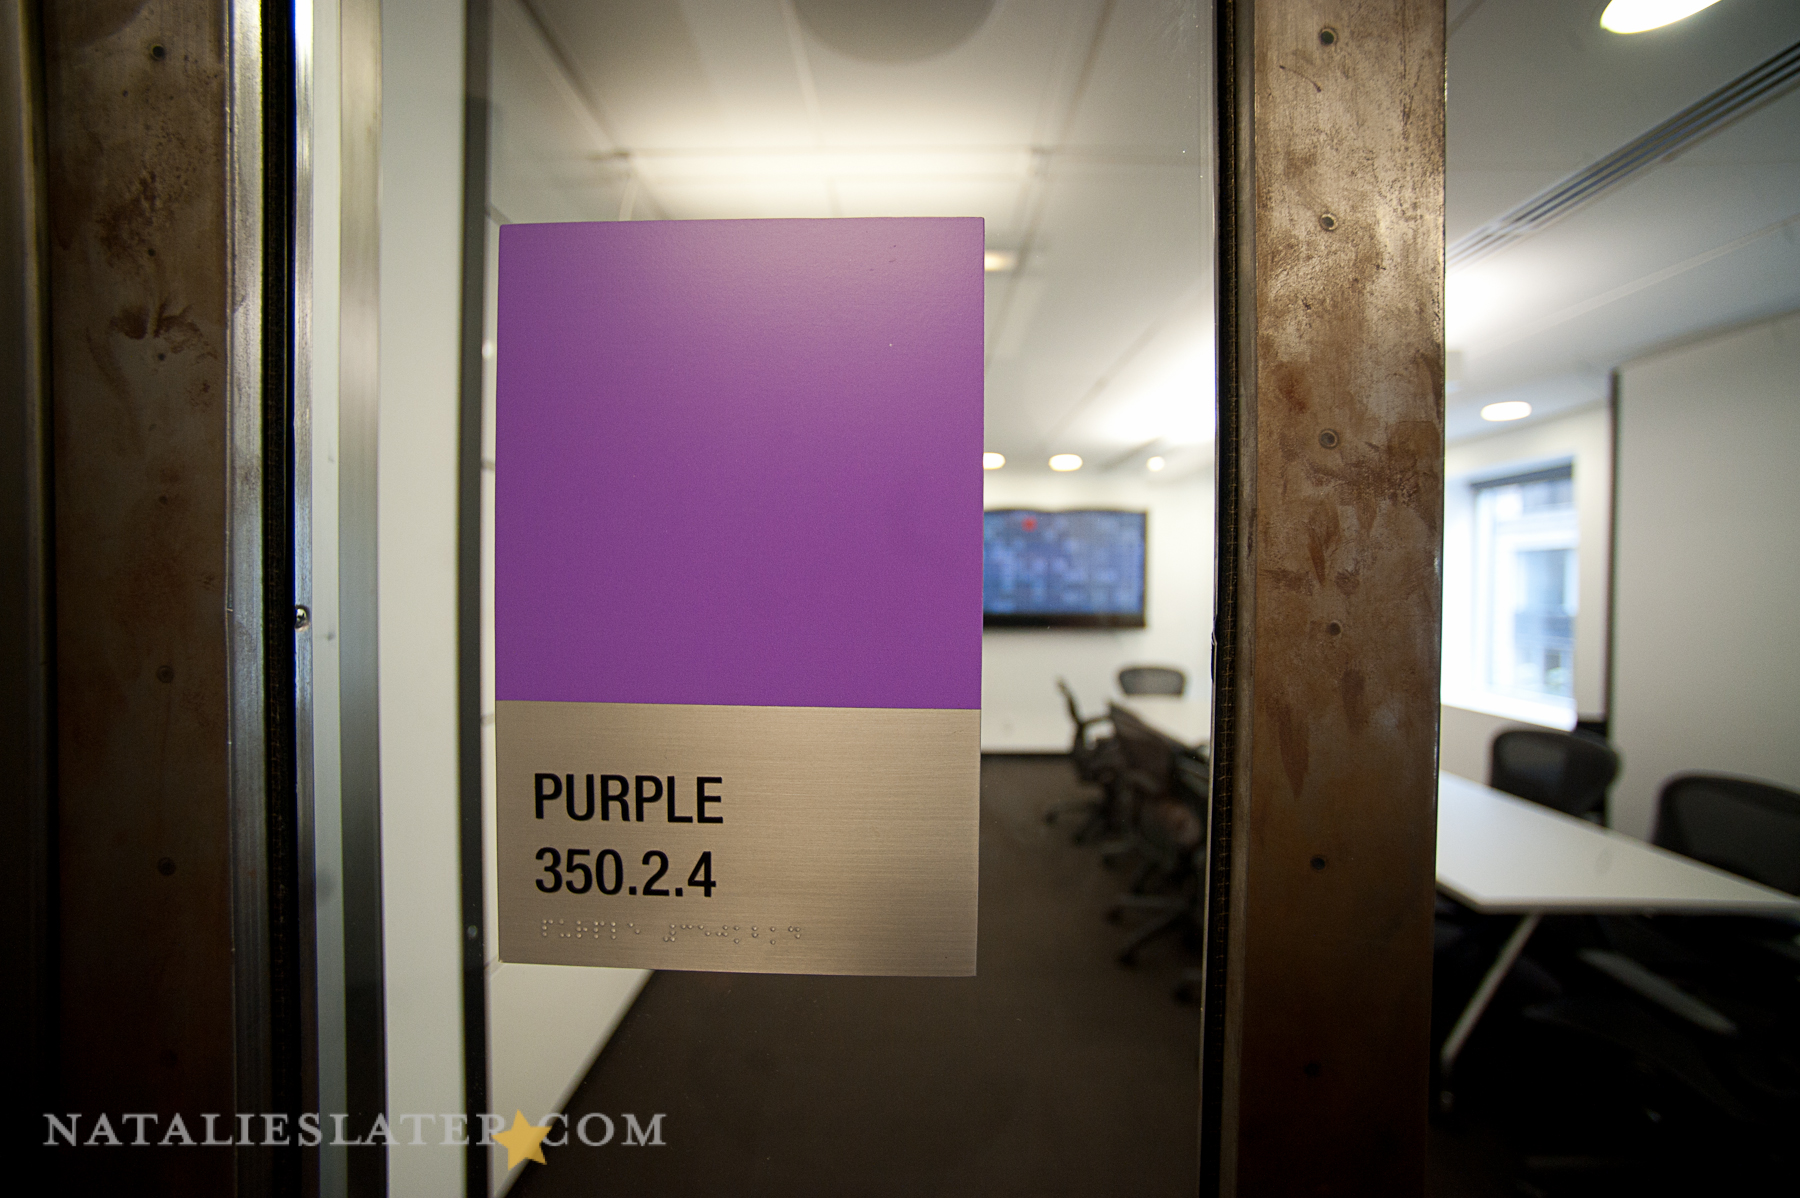 They label their conference rooms with pantone colors. Design nerdz, right?